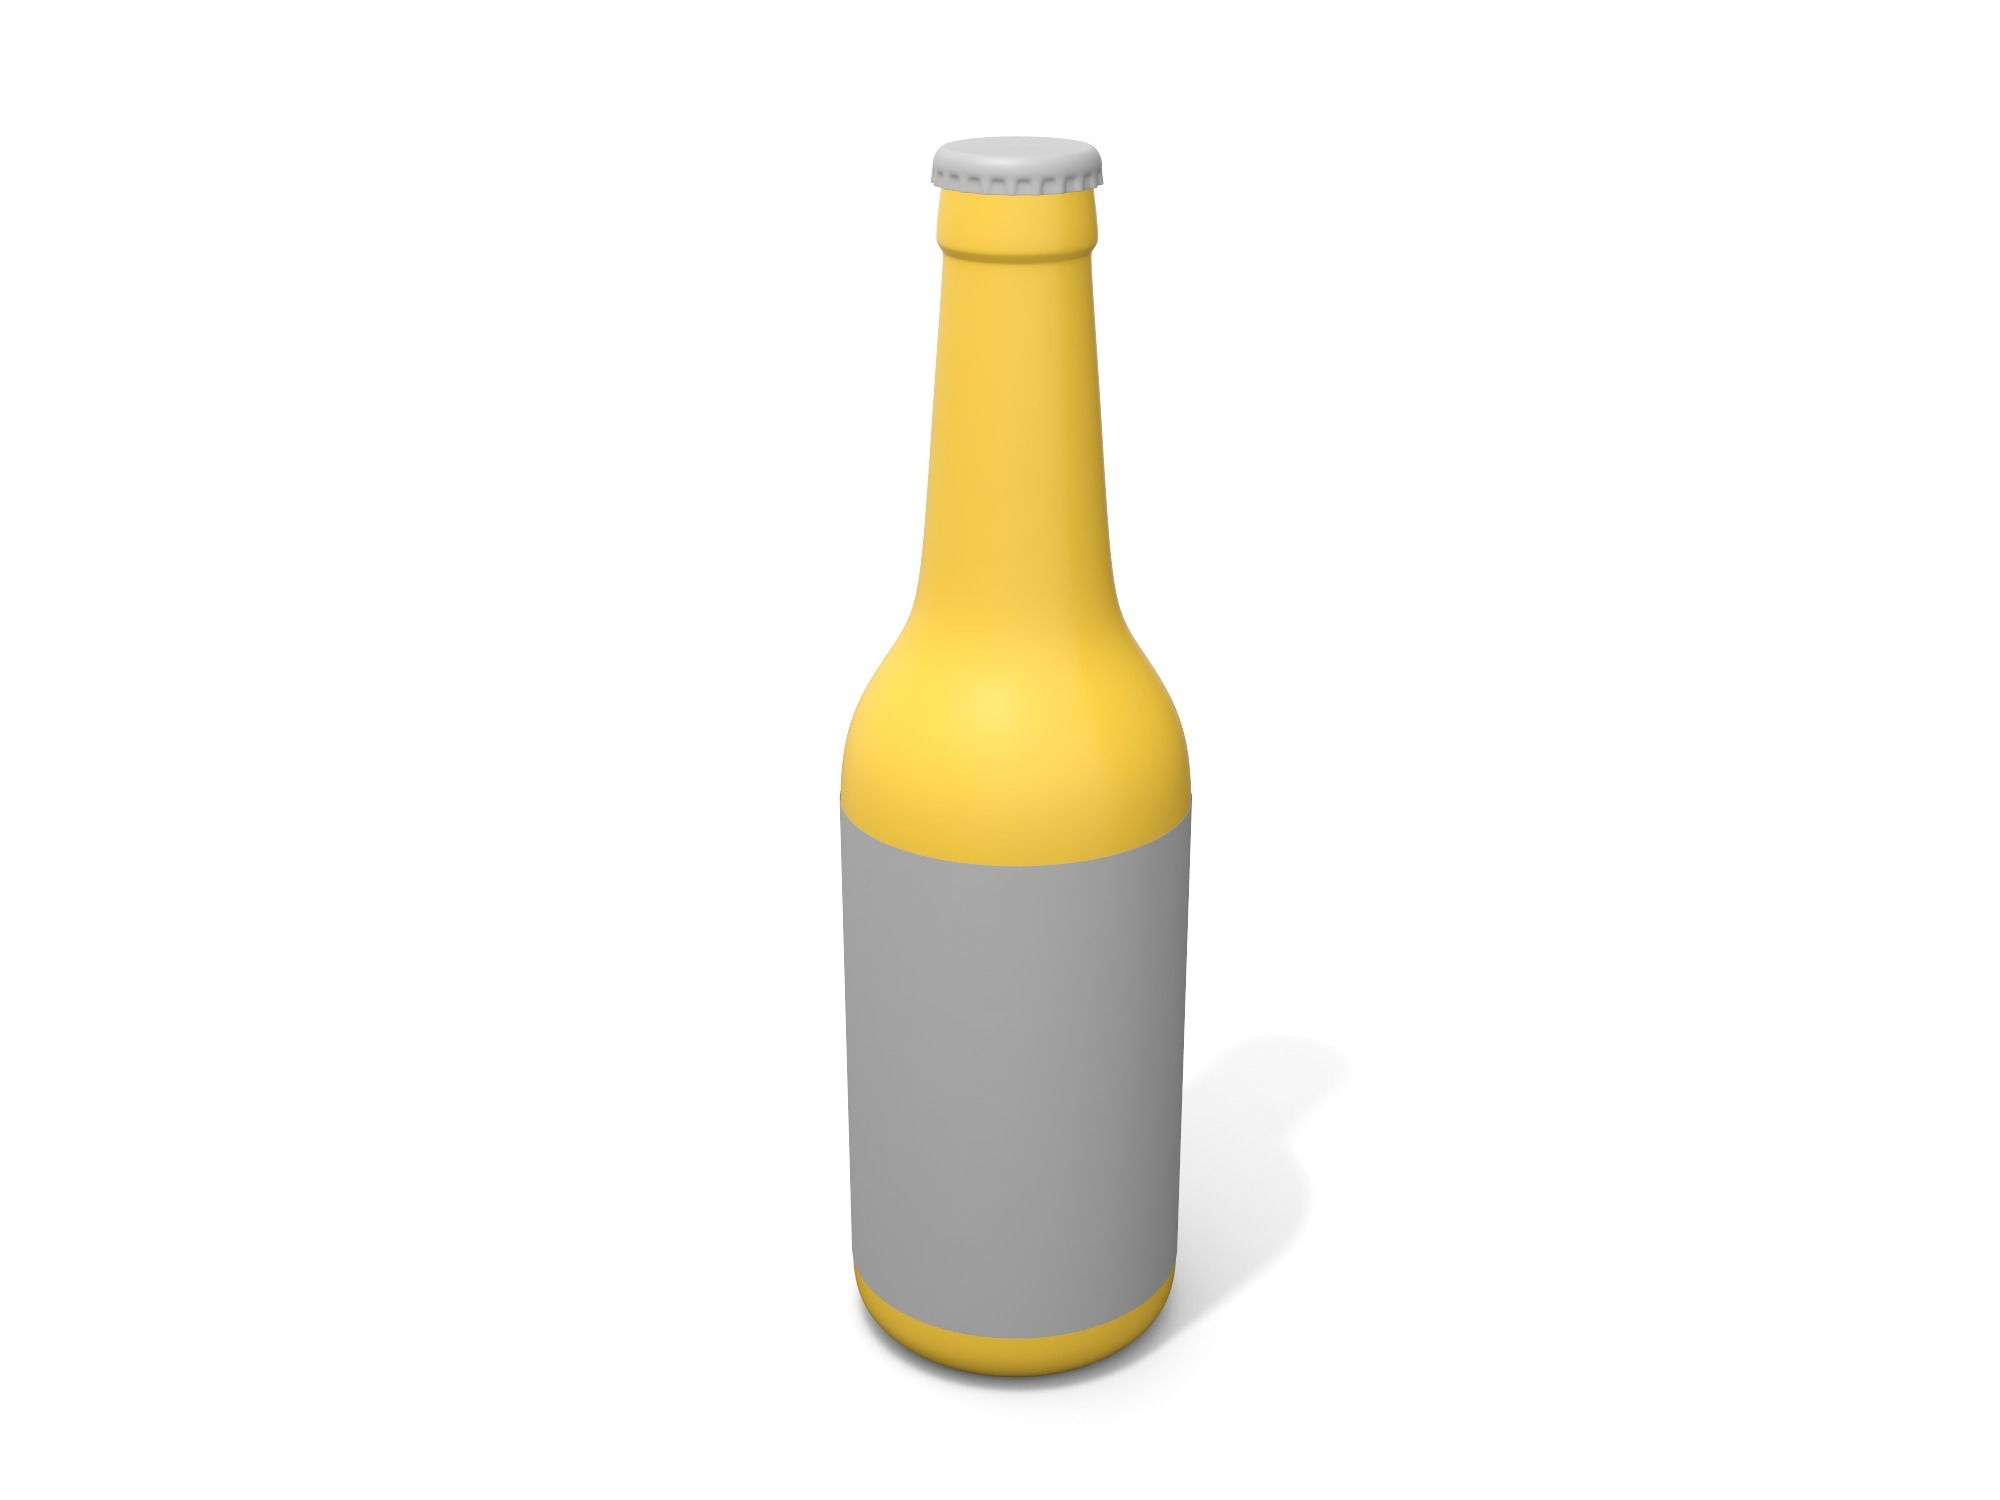 Beer bottle - 3D design by Vectary assets Nov 7, 2018